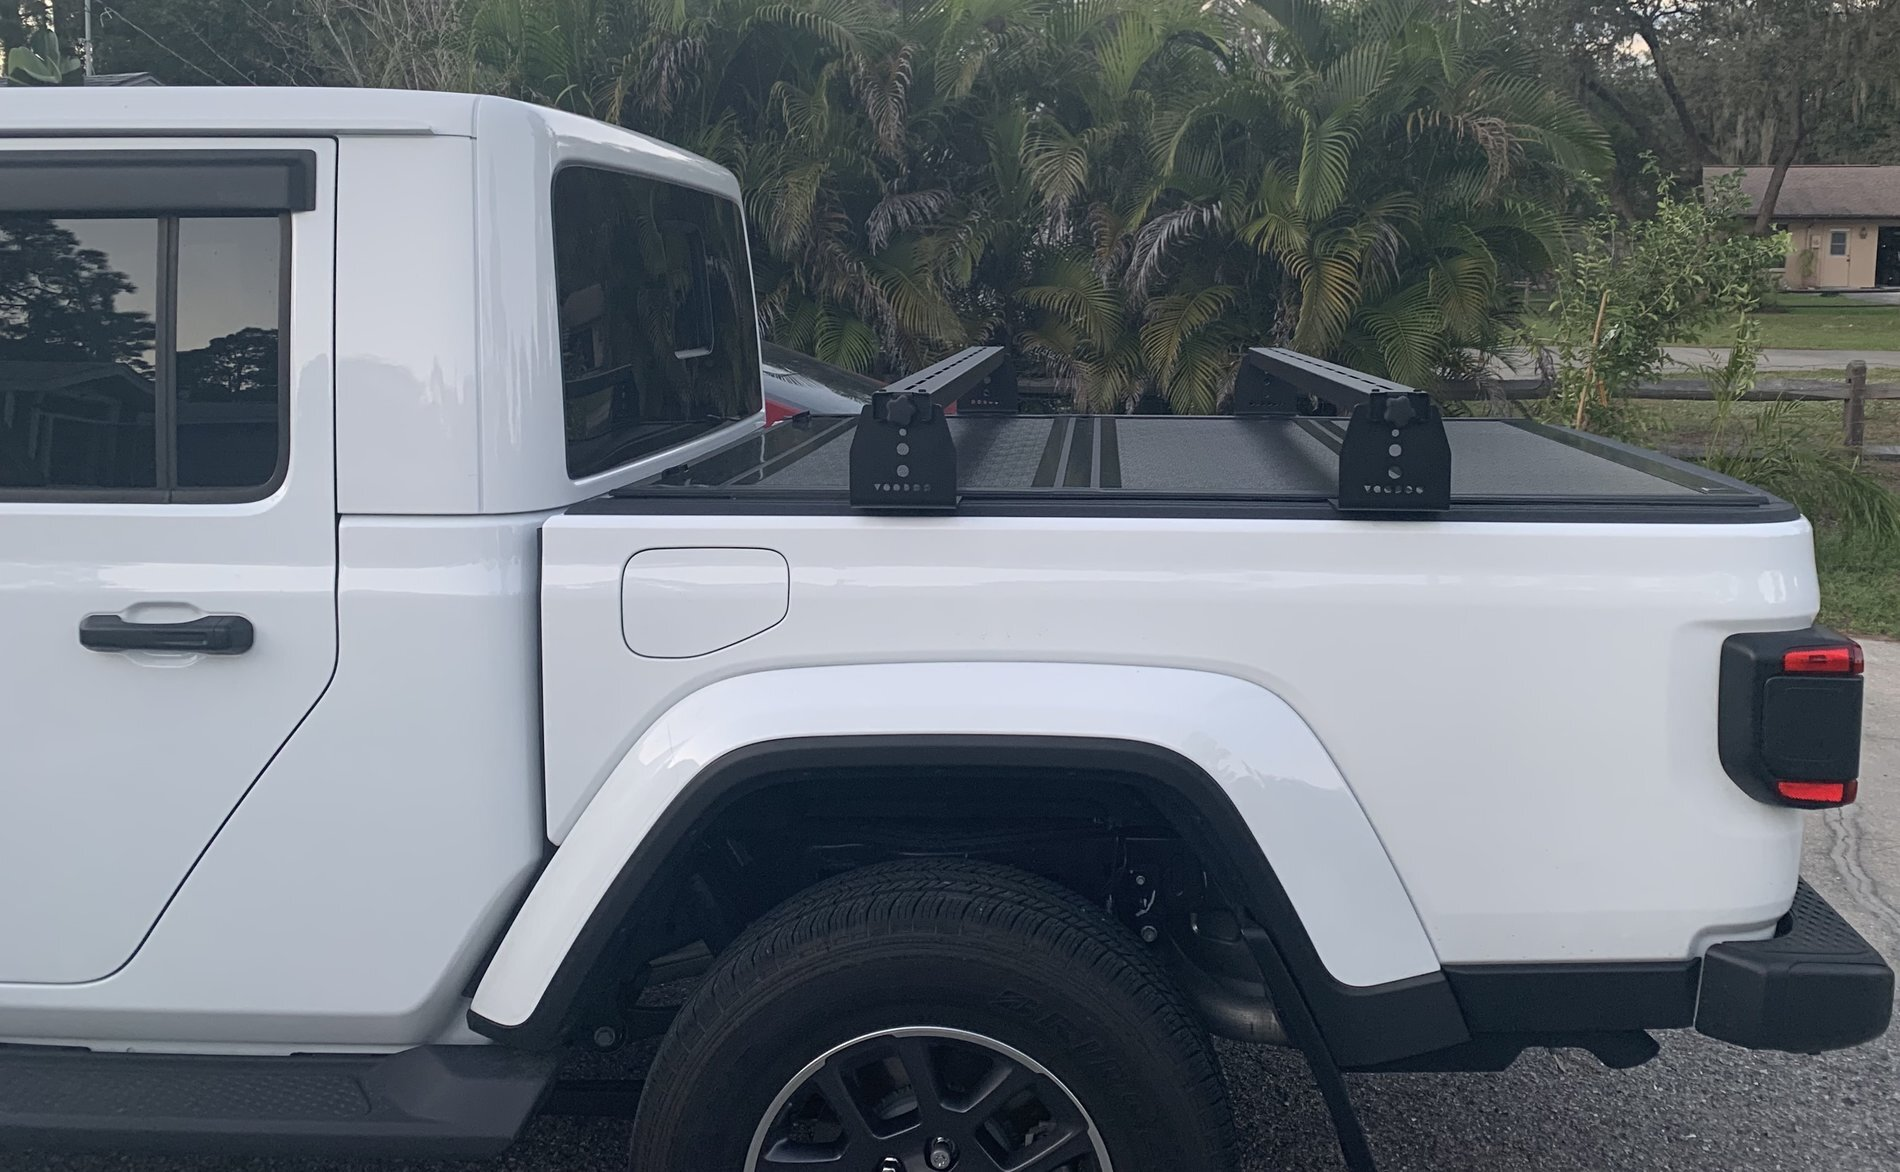 Jeep Gladiator Hi Rise Crossbars For Use With Tonneau Covers Kb Voodoo Fabrications